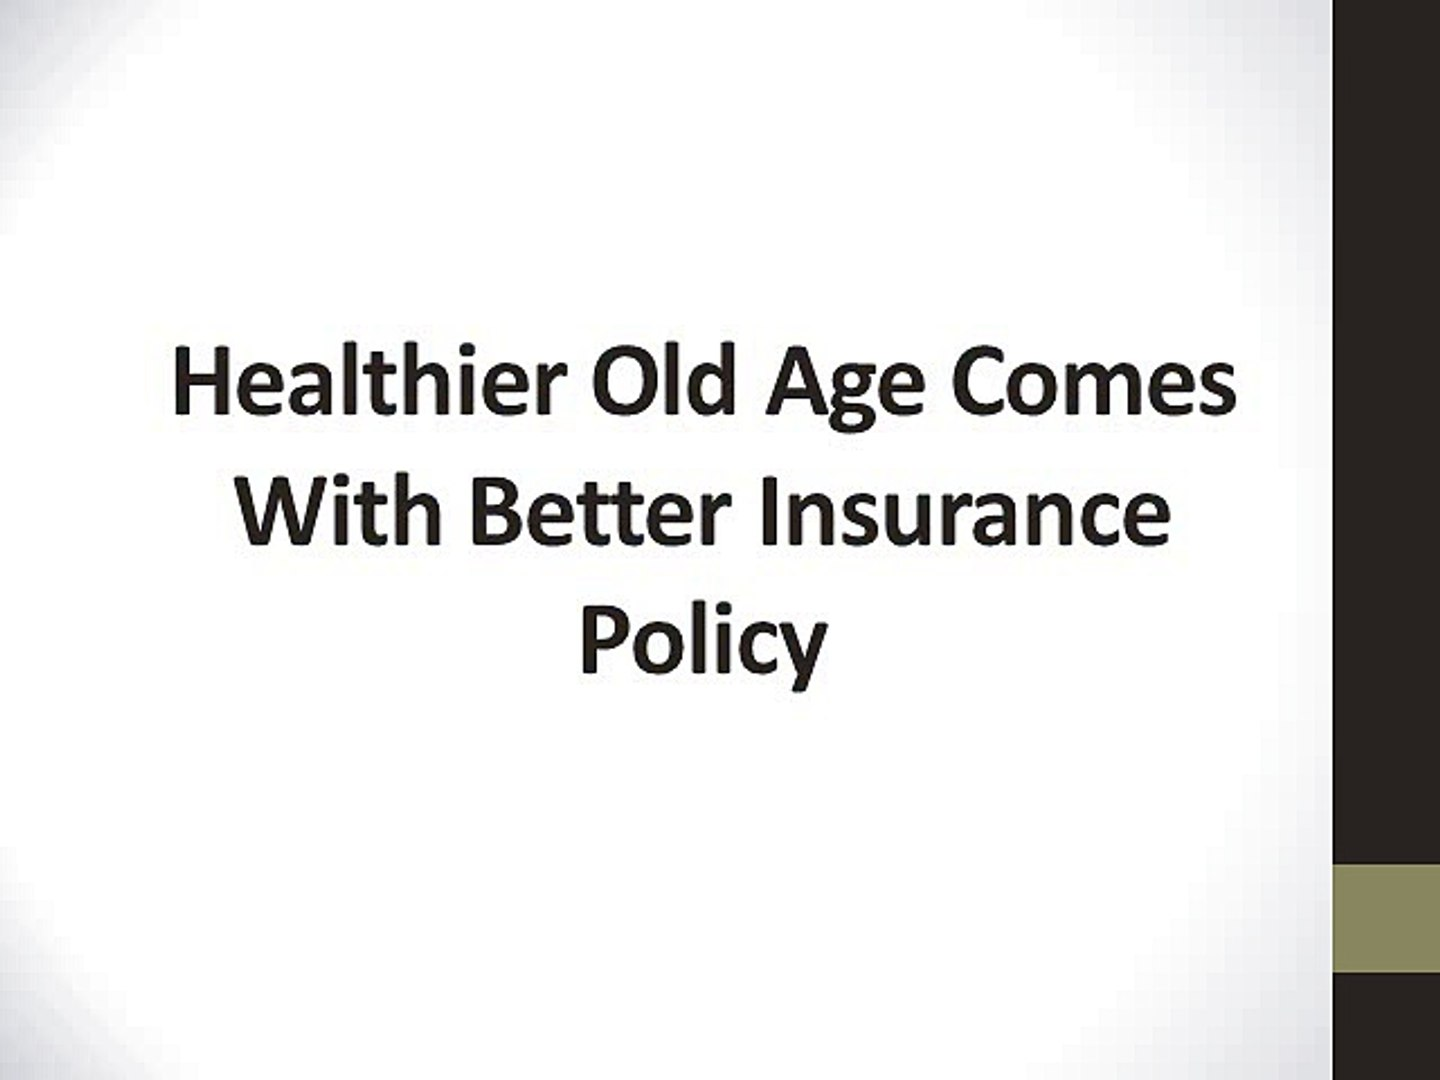 Healthier Old Age Comes With Better Insurance Policy